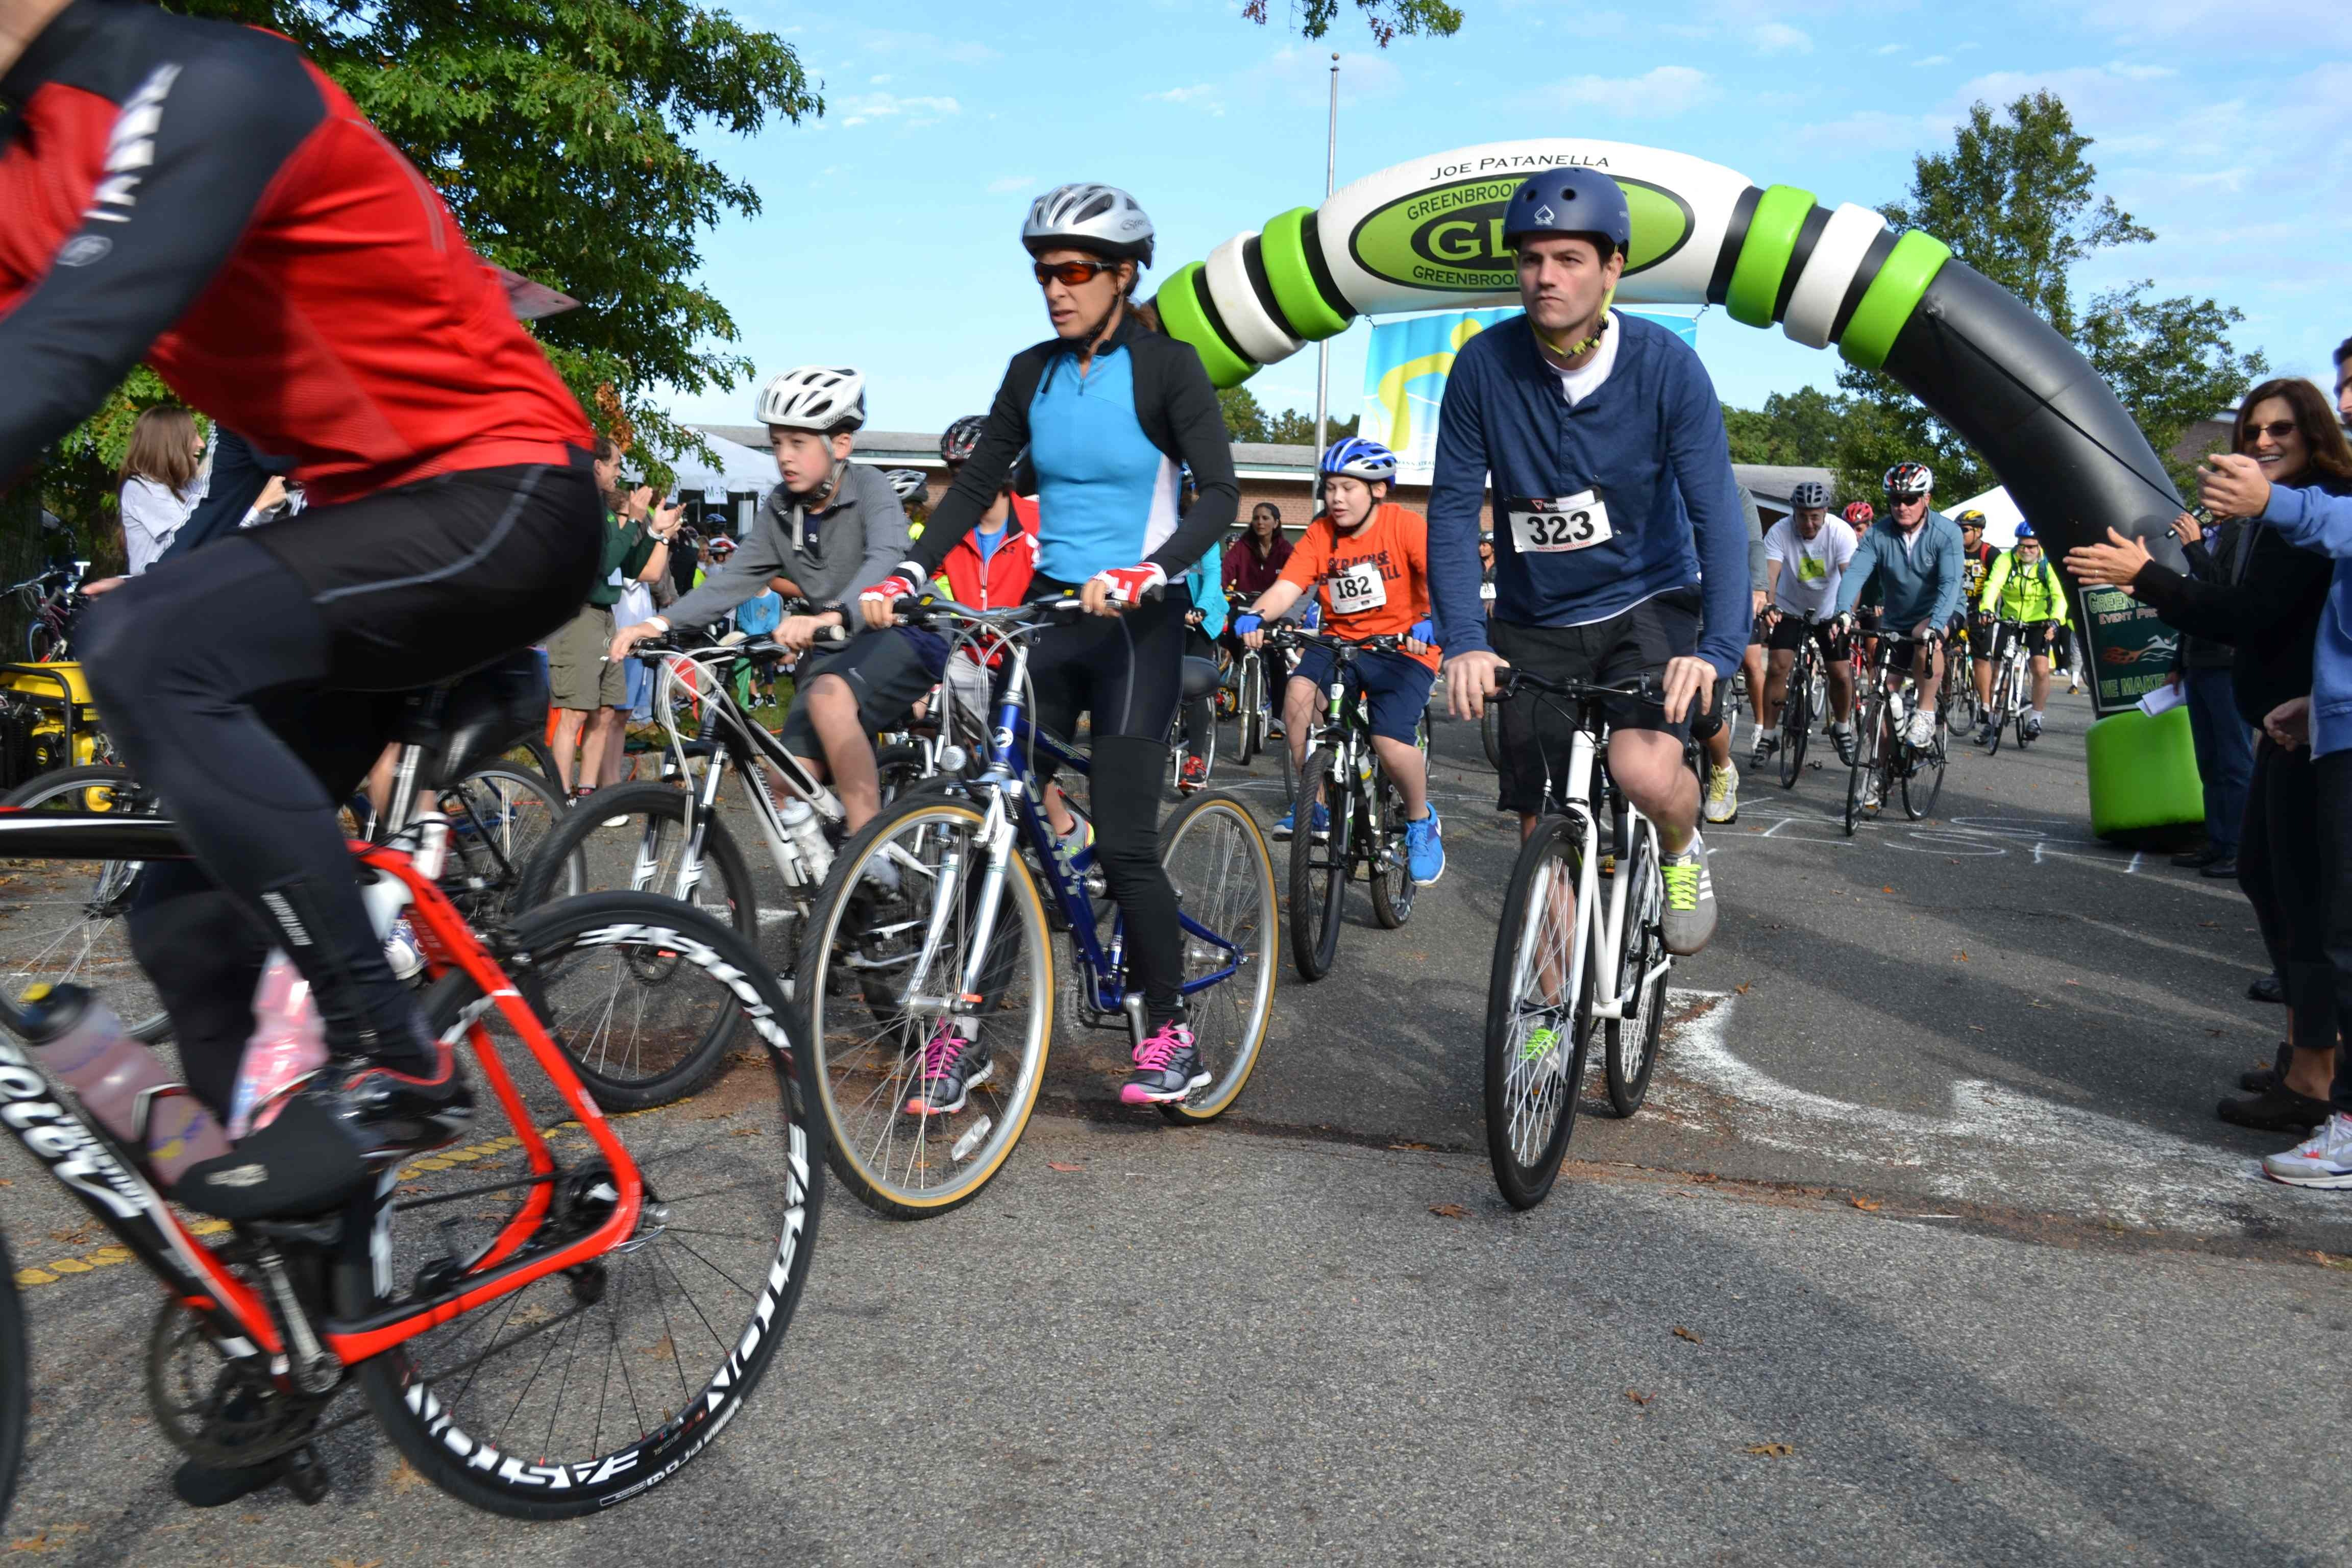 Riding For Hope:  5th Annual Jake's Ride for Dystonia Research Held in Millburn